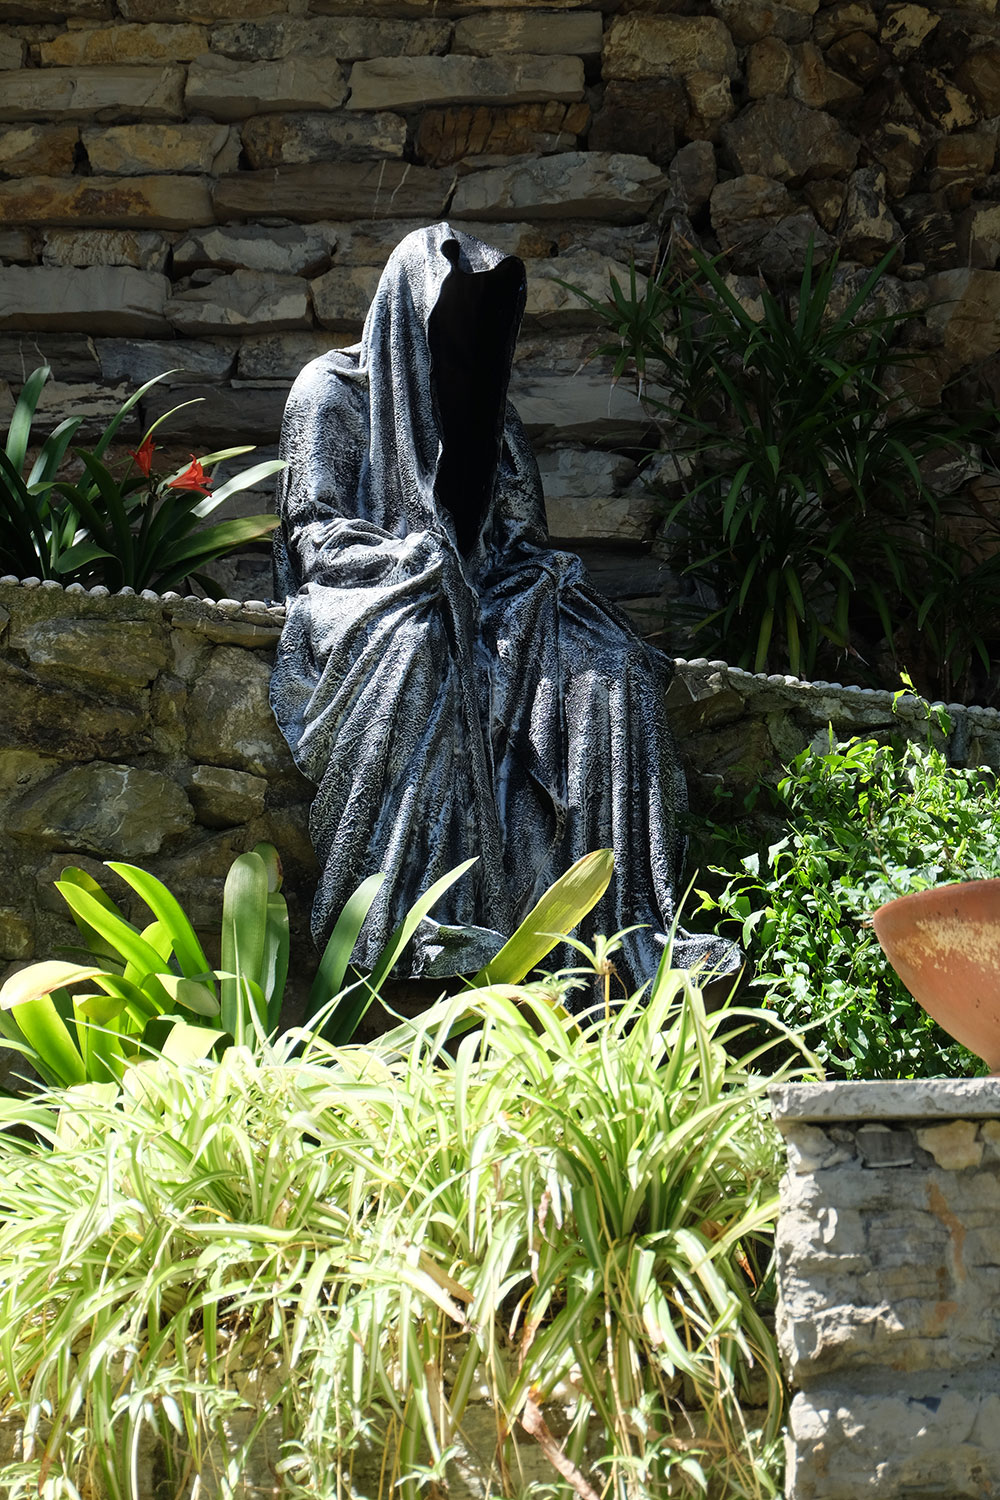 guardians-of-time-manfred-kili-kielnhofer-contemporary-fine-art-sculpture-tour-italy-genova-rapallo-portofino-see-cost-2421